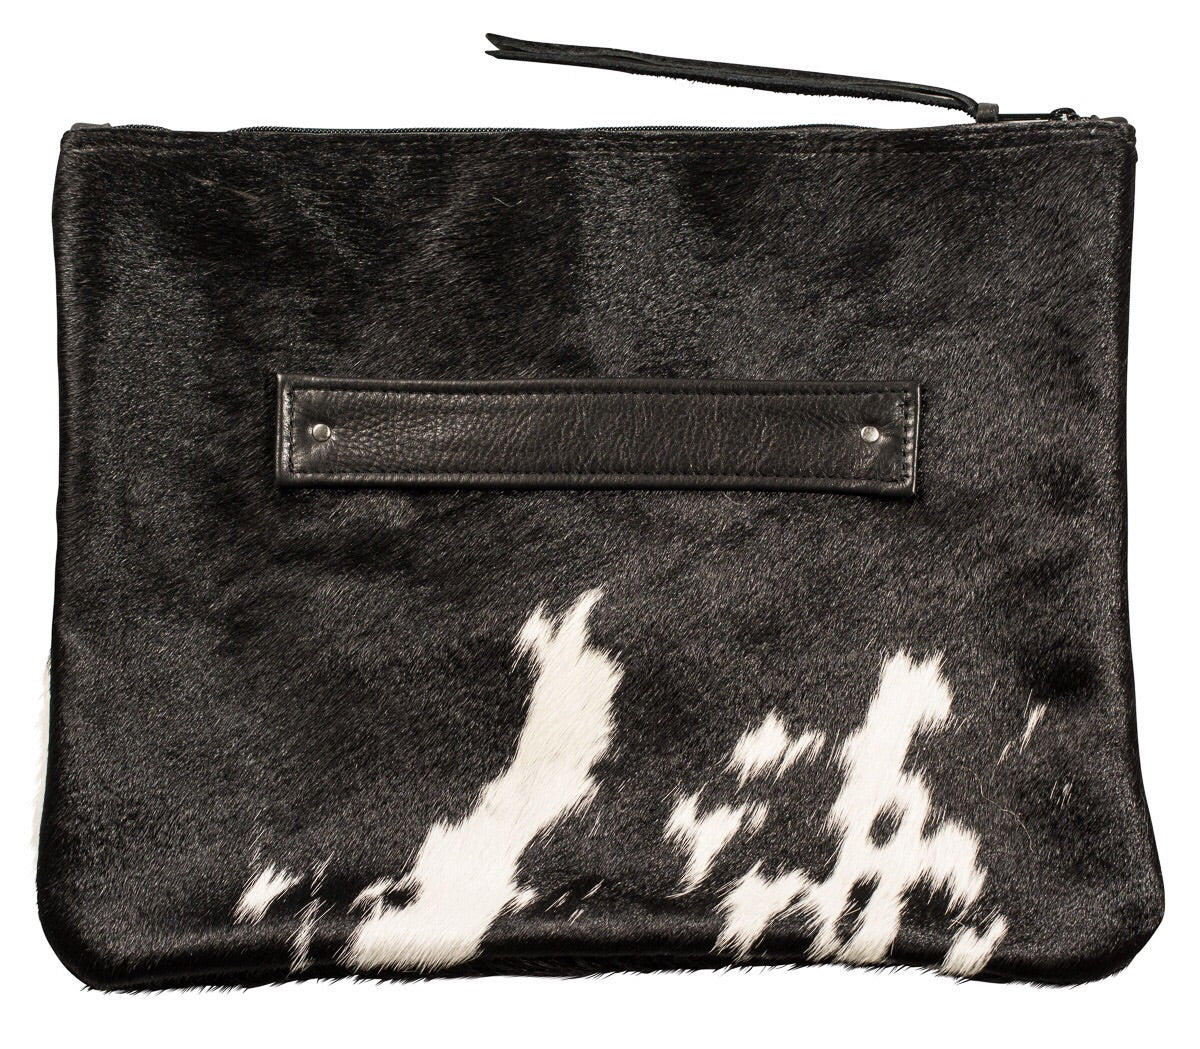 XL Oversize black and white calf hair clutch